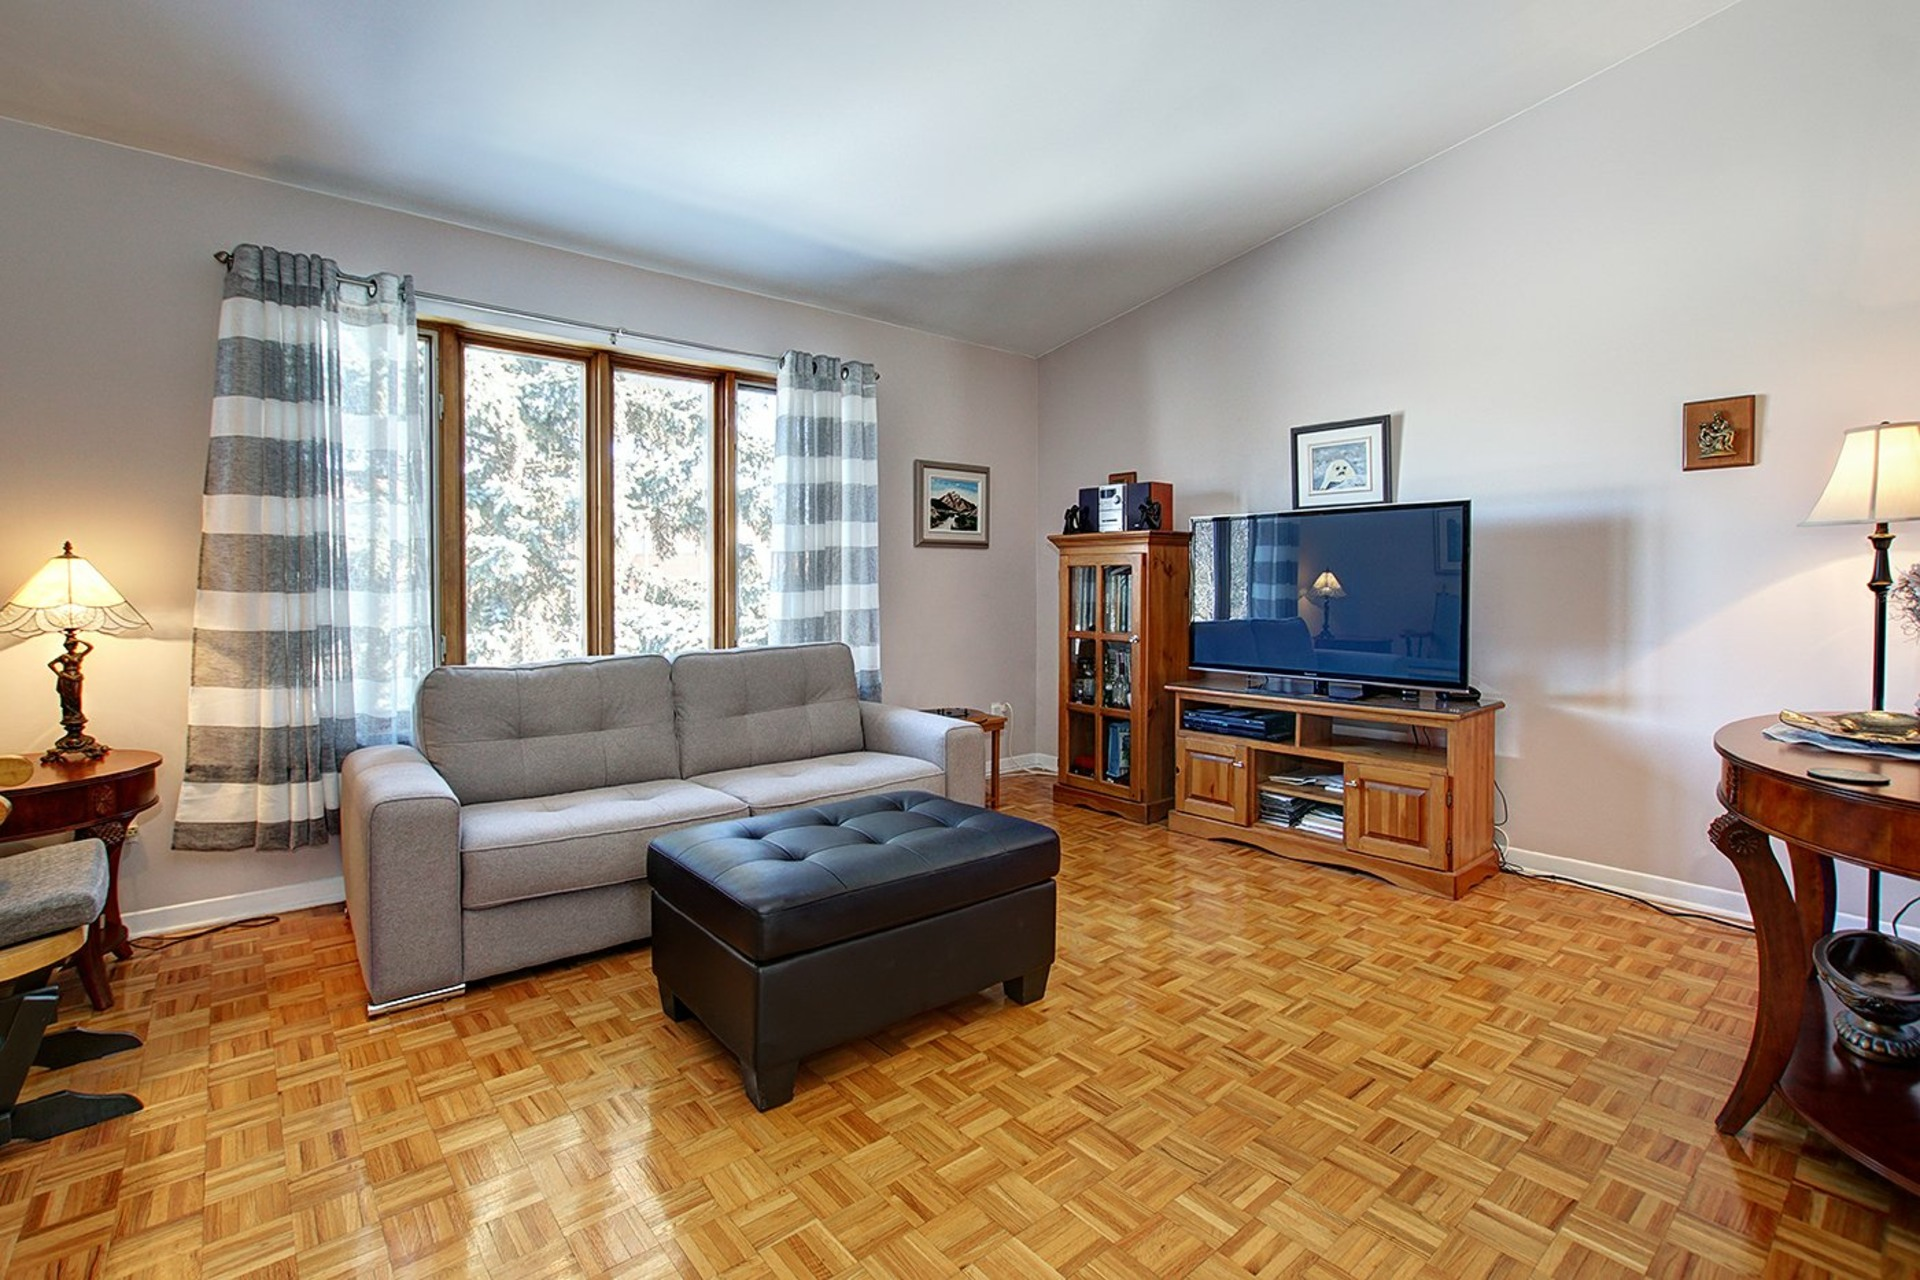 image 5 - House For sale Repentigny Repentigny  - 10 rooms